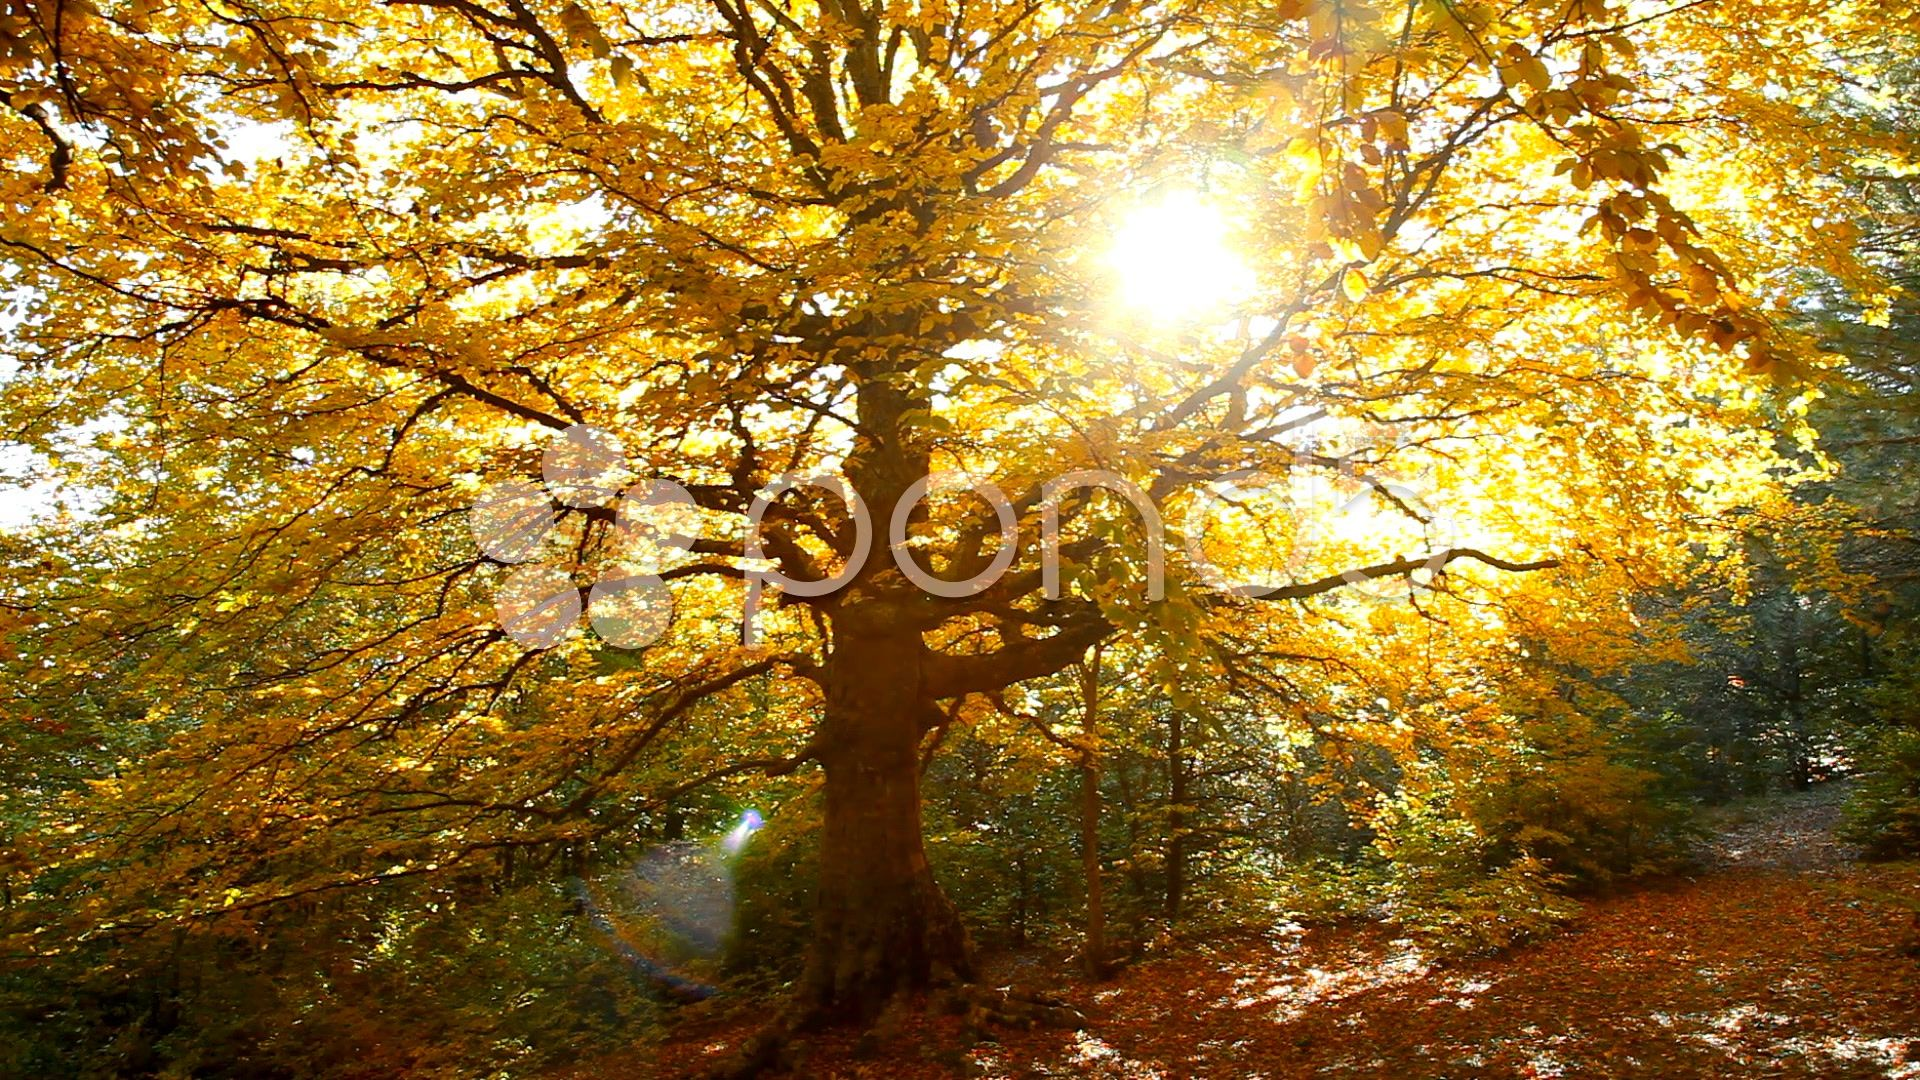 Autumn trees in the park - Stock Footage | by silverjohn